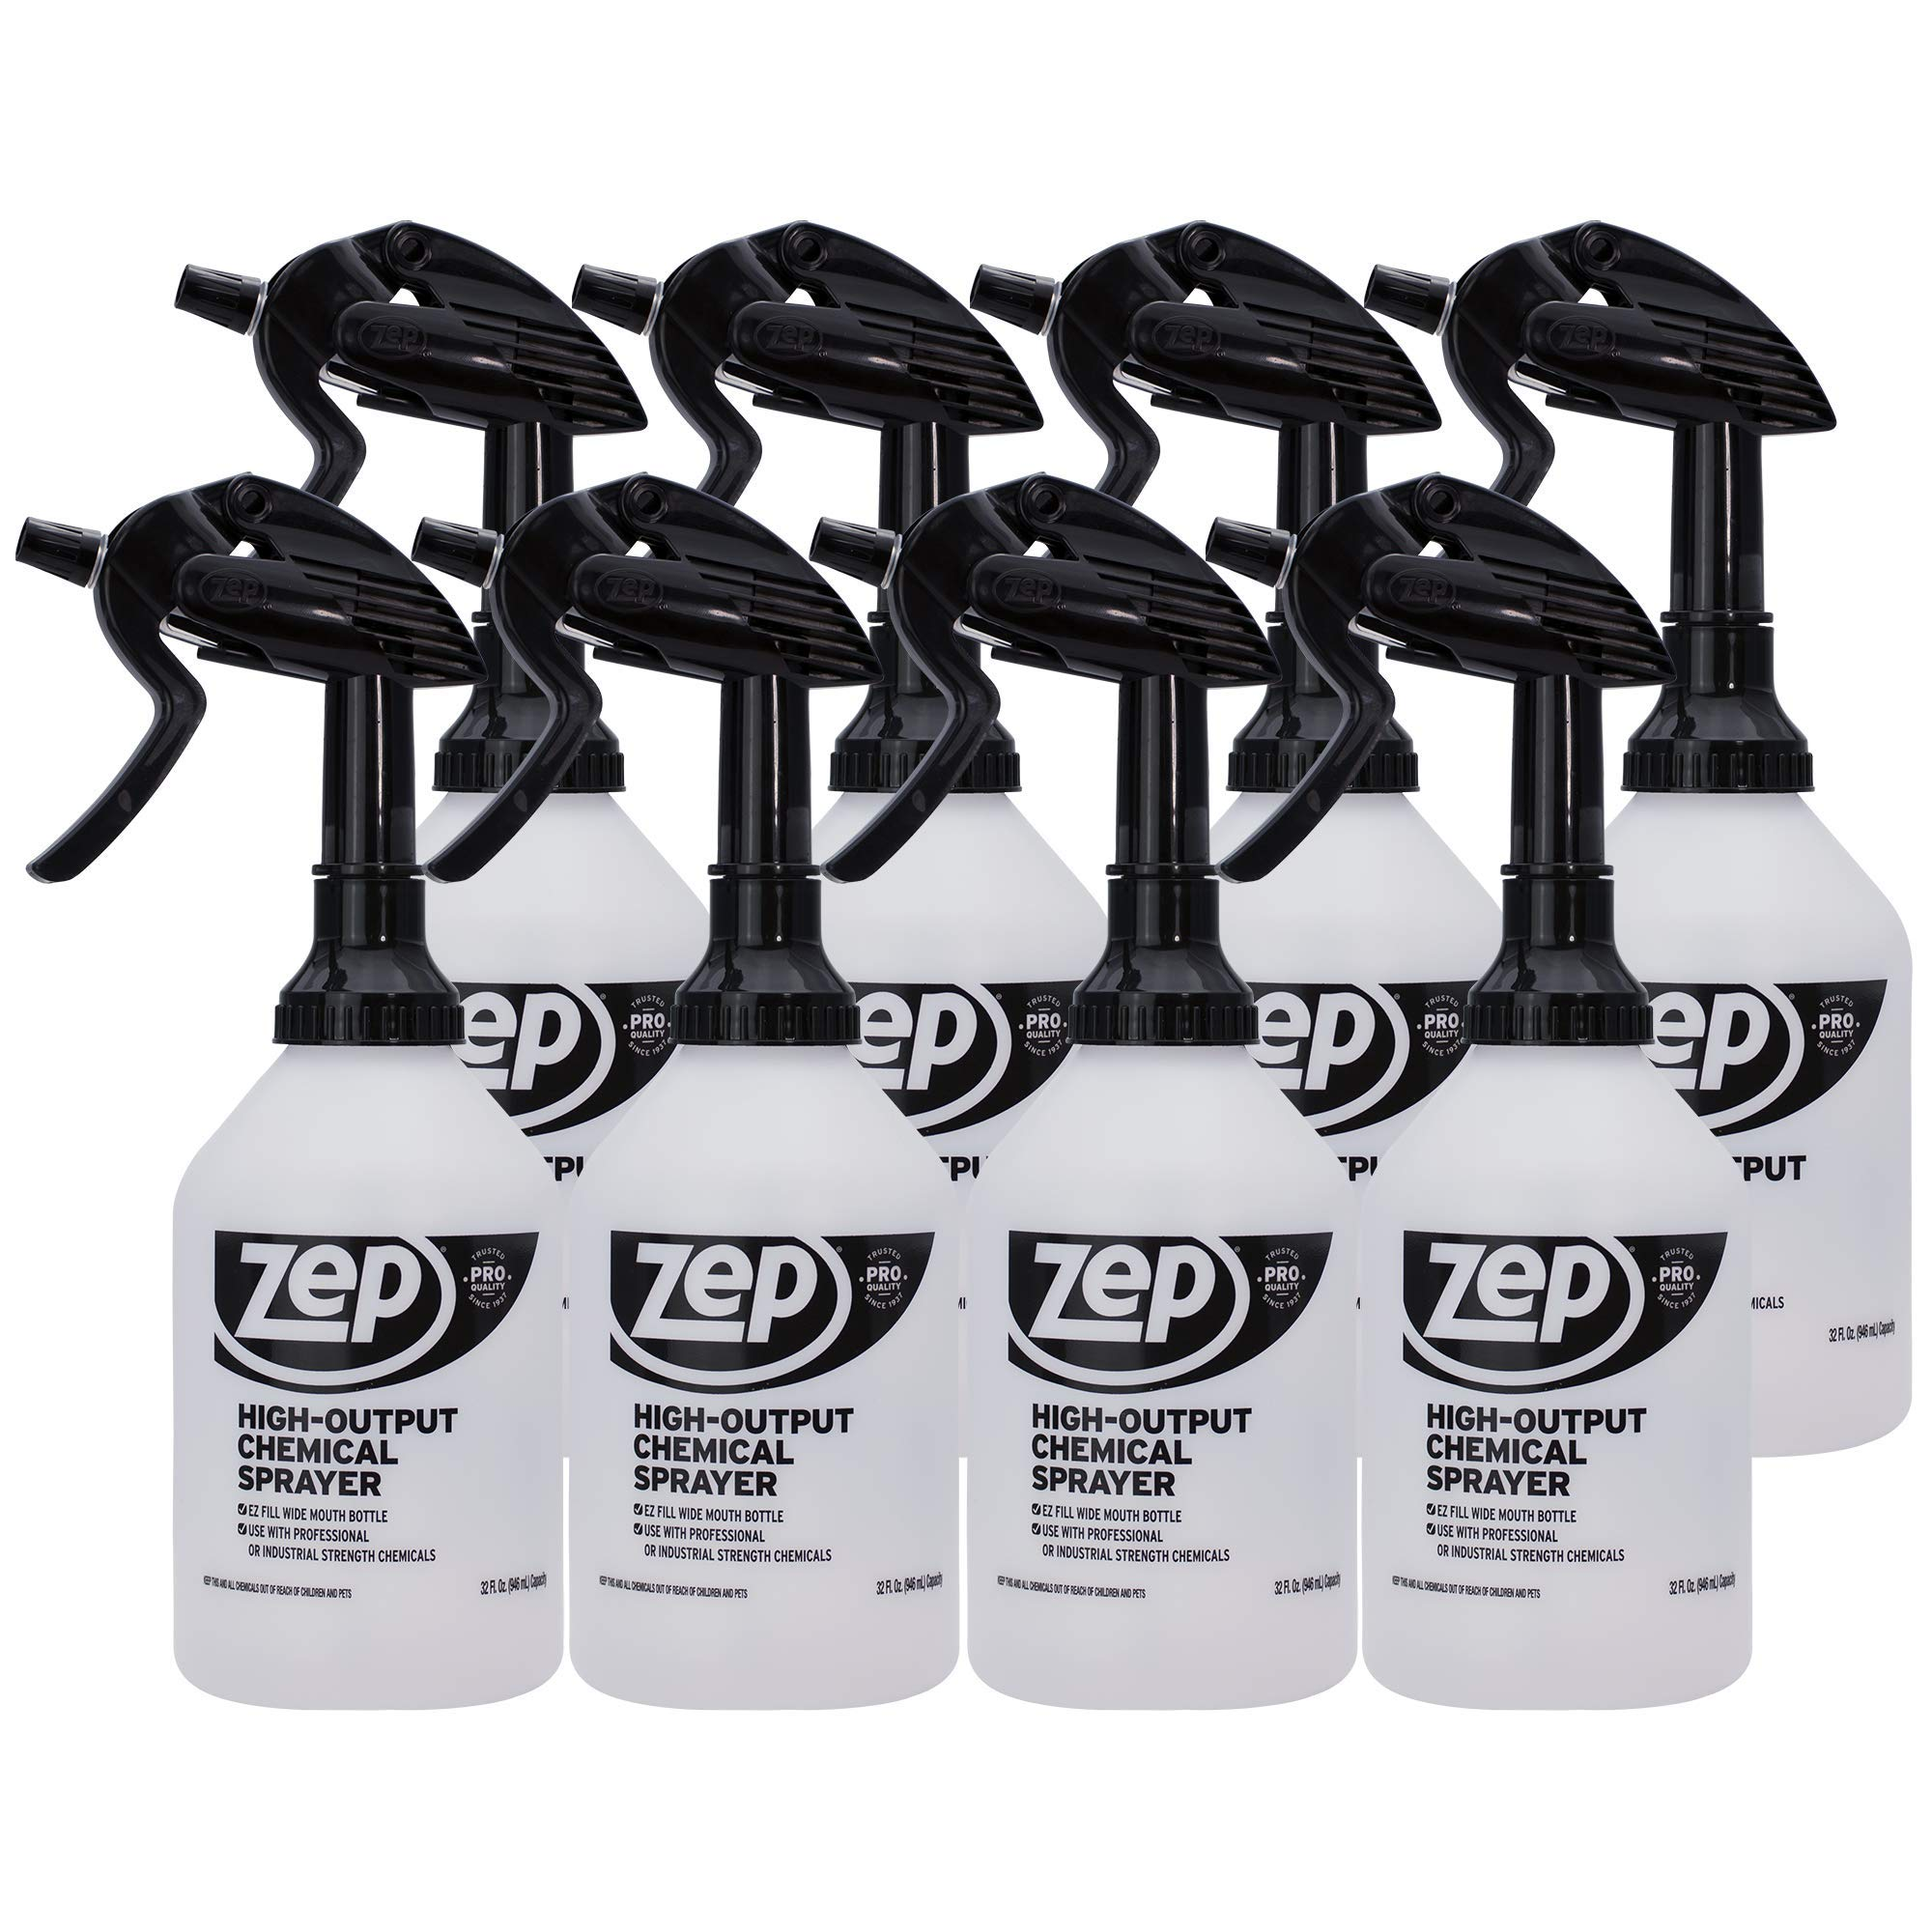 Zep High Output Chemical Pro Sprayer 32 Ounce (Case of 8) - Wide Mouth for Easy Pouring